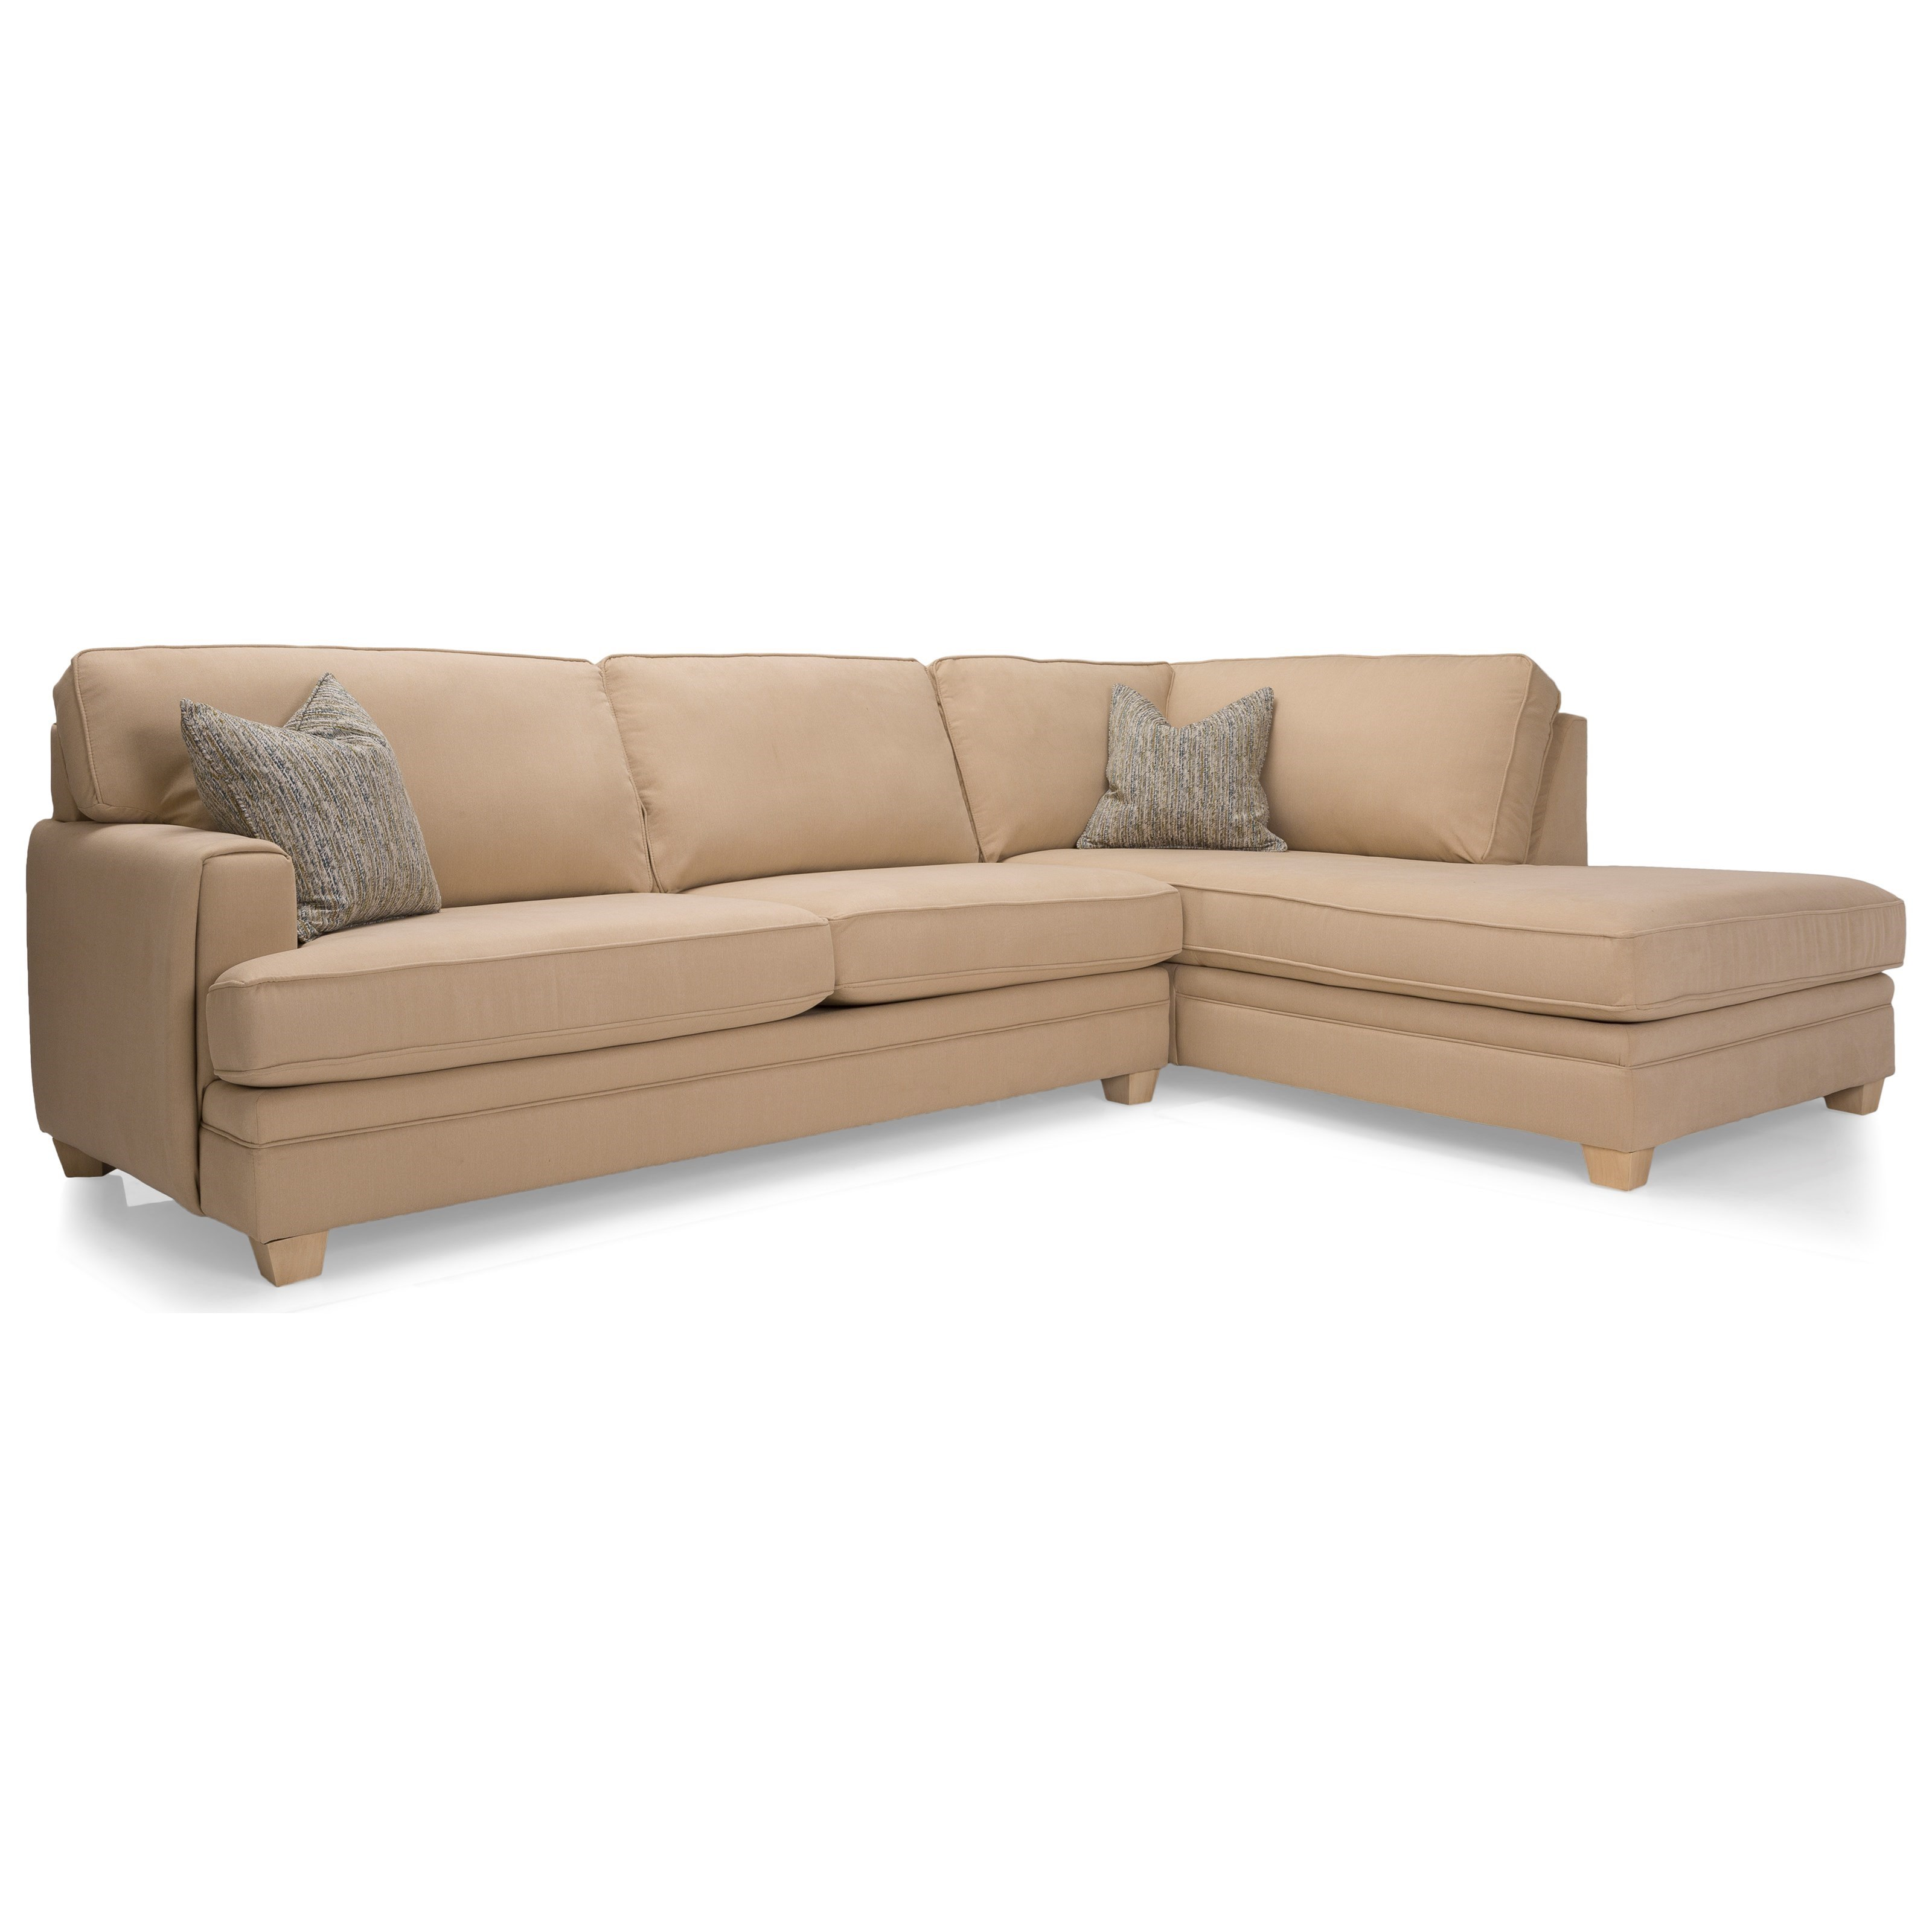 2697 Sectional Sofa by Decor-Rest at Upper Room Home Furnishings